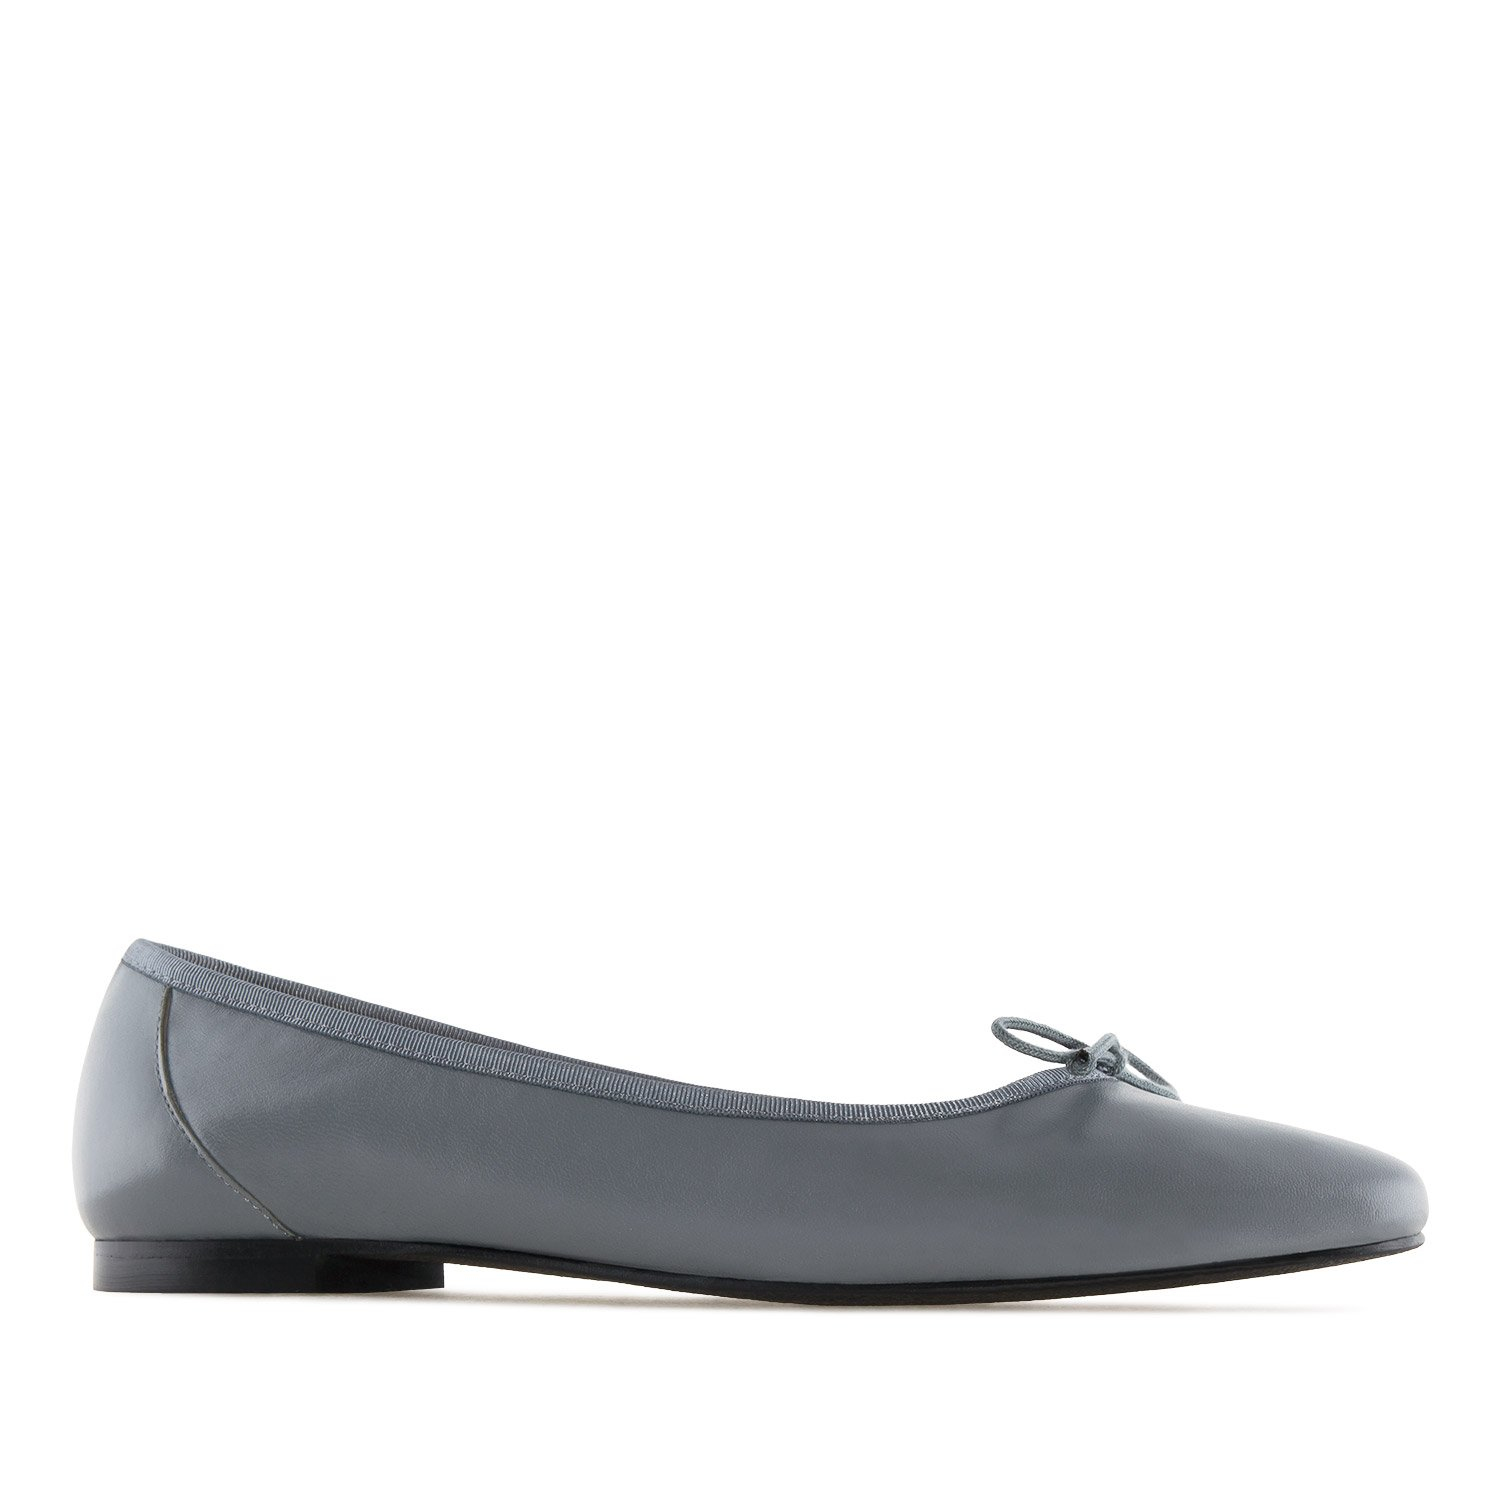 60%OFF Andres Machado.MARTA.Ballet Flats in Black LEATHER